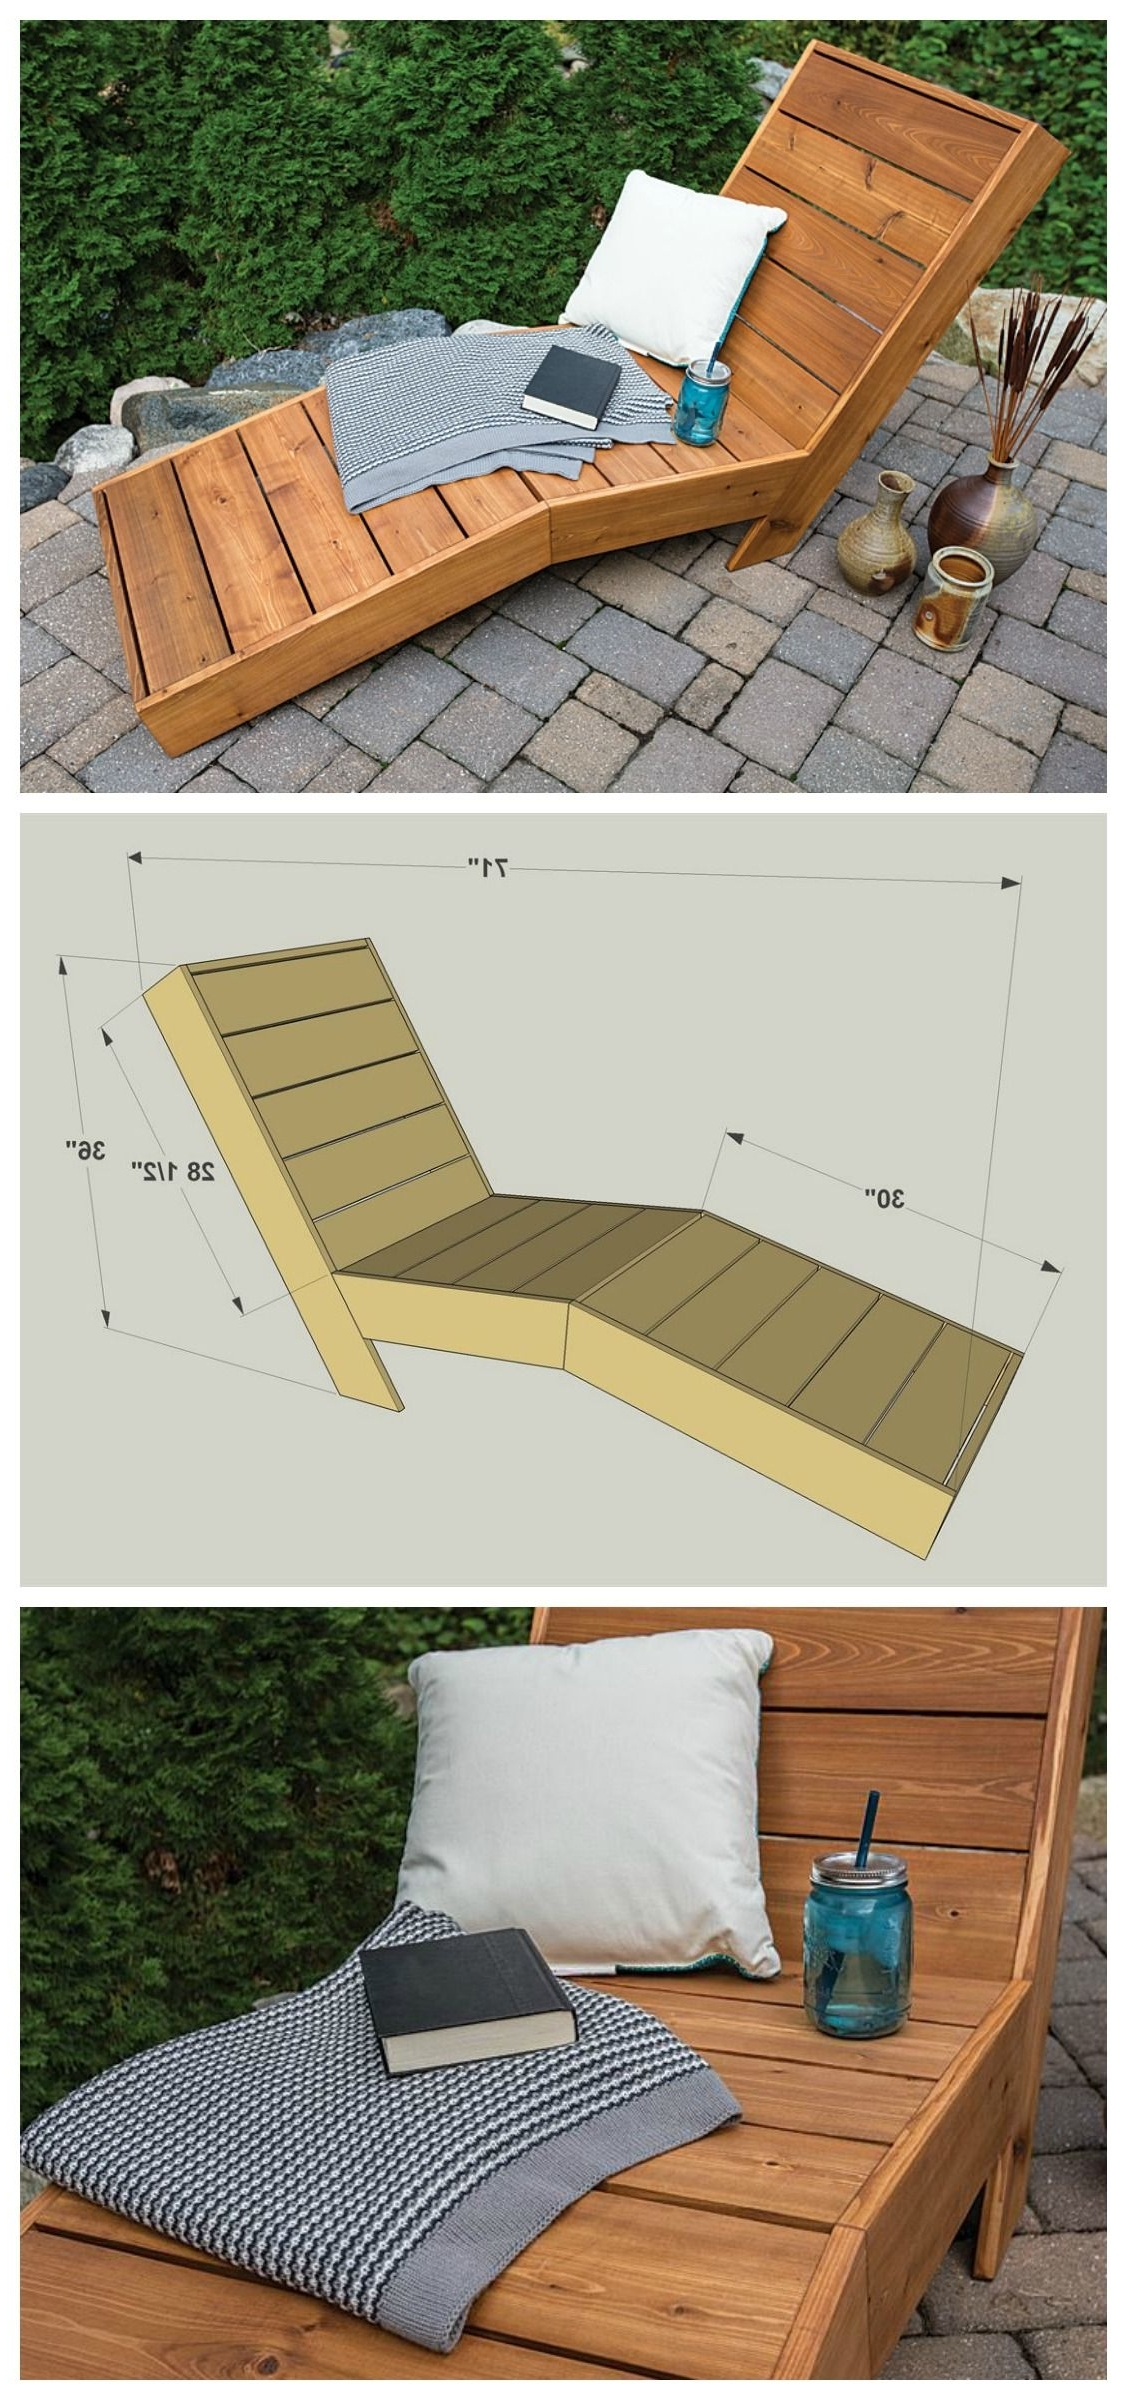 Diy Chaise Lounges Inside Newest Diy Outdoor Chaise Lounge :: Free Plans At Buildsomething (View 5 of 15)